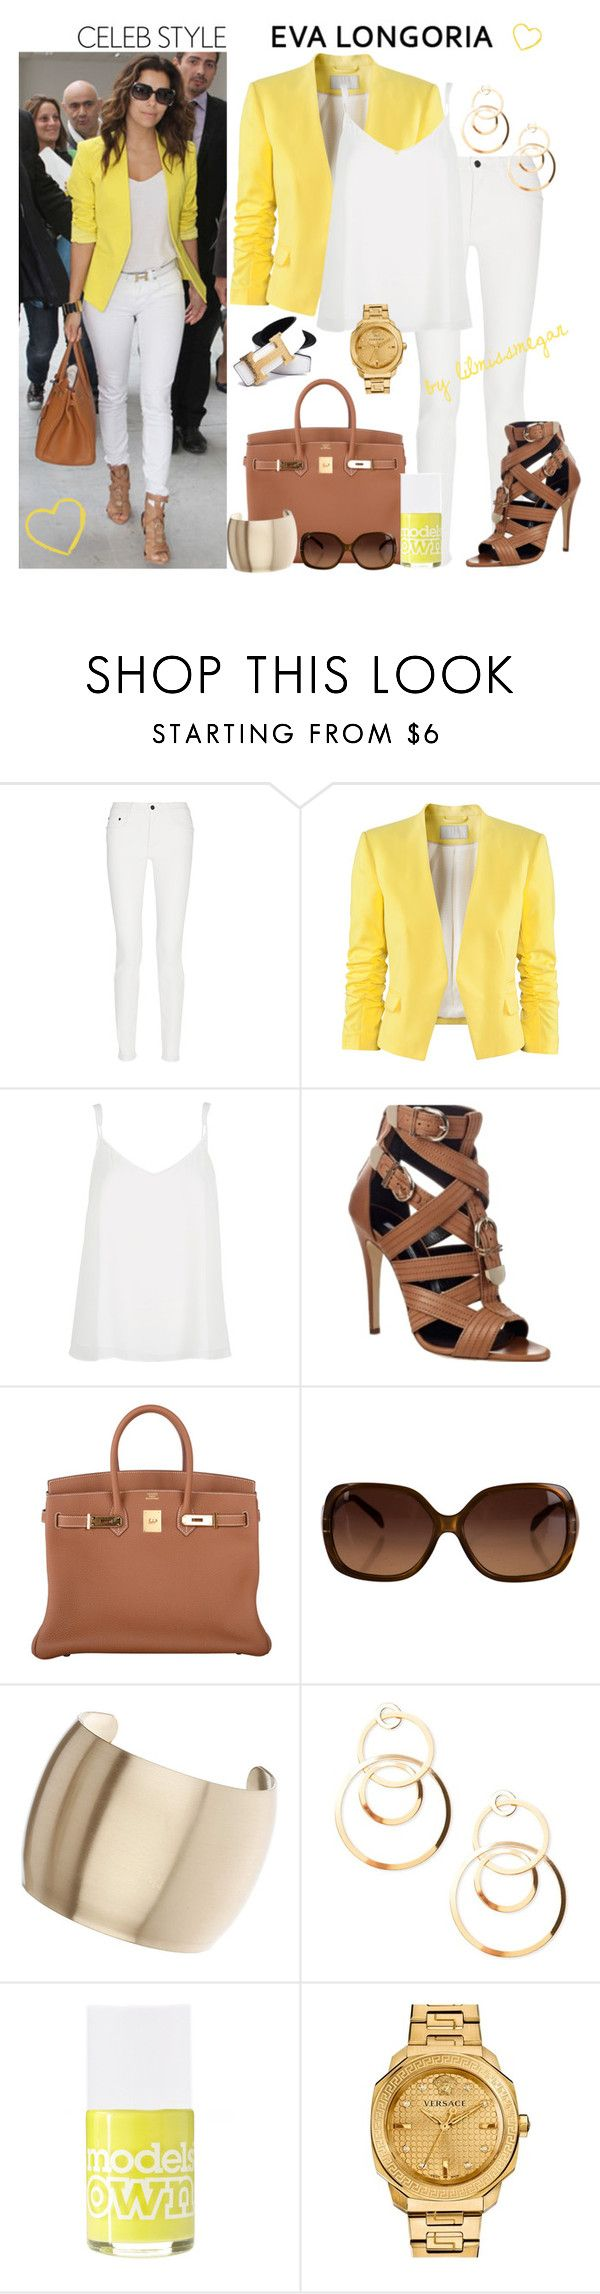 """""""#173 - Celeb Style: Eva Longoria"""" by lilmissmegan ❤ liked on Polyvore featuring Proenza Schouler, H&M, River Island, Hermès, Brian Atwood, Fendi, Topshop, Forever 21, Models Own and Versace"""